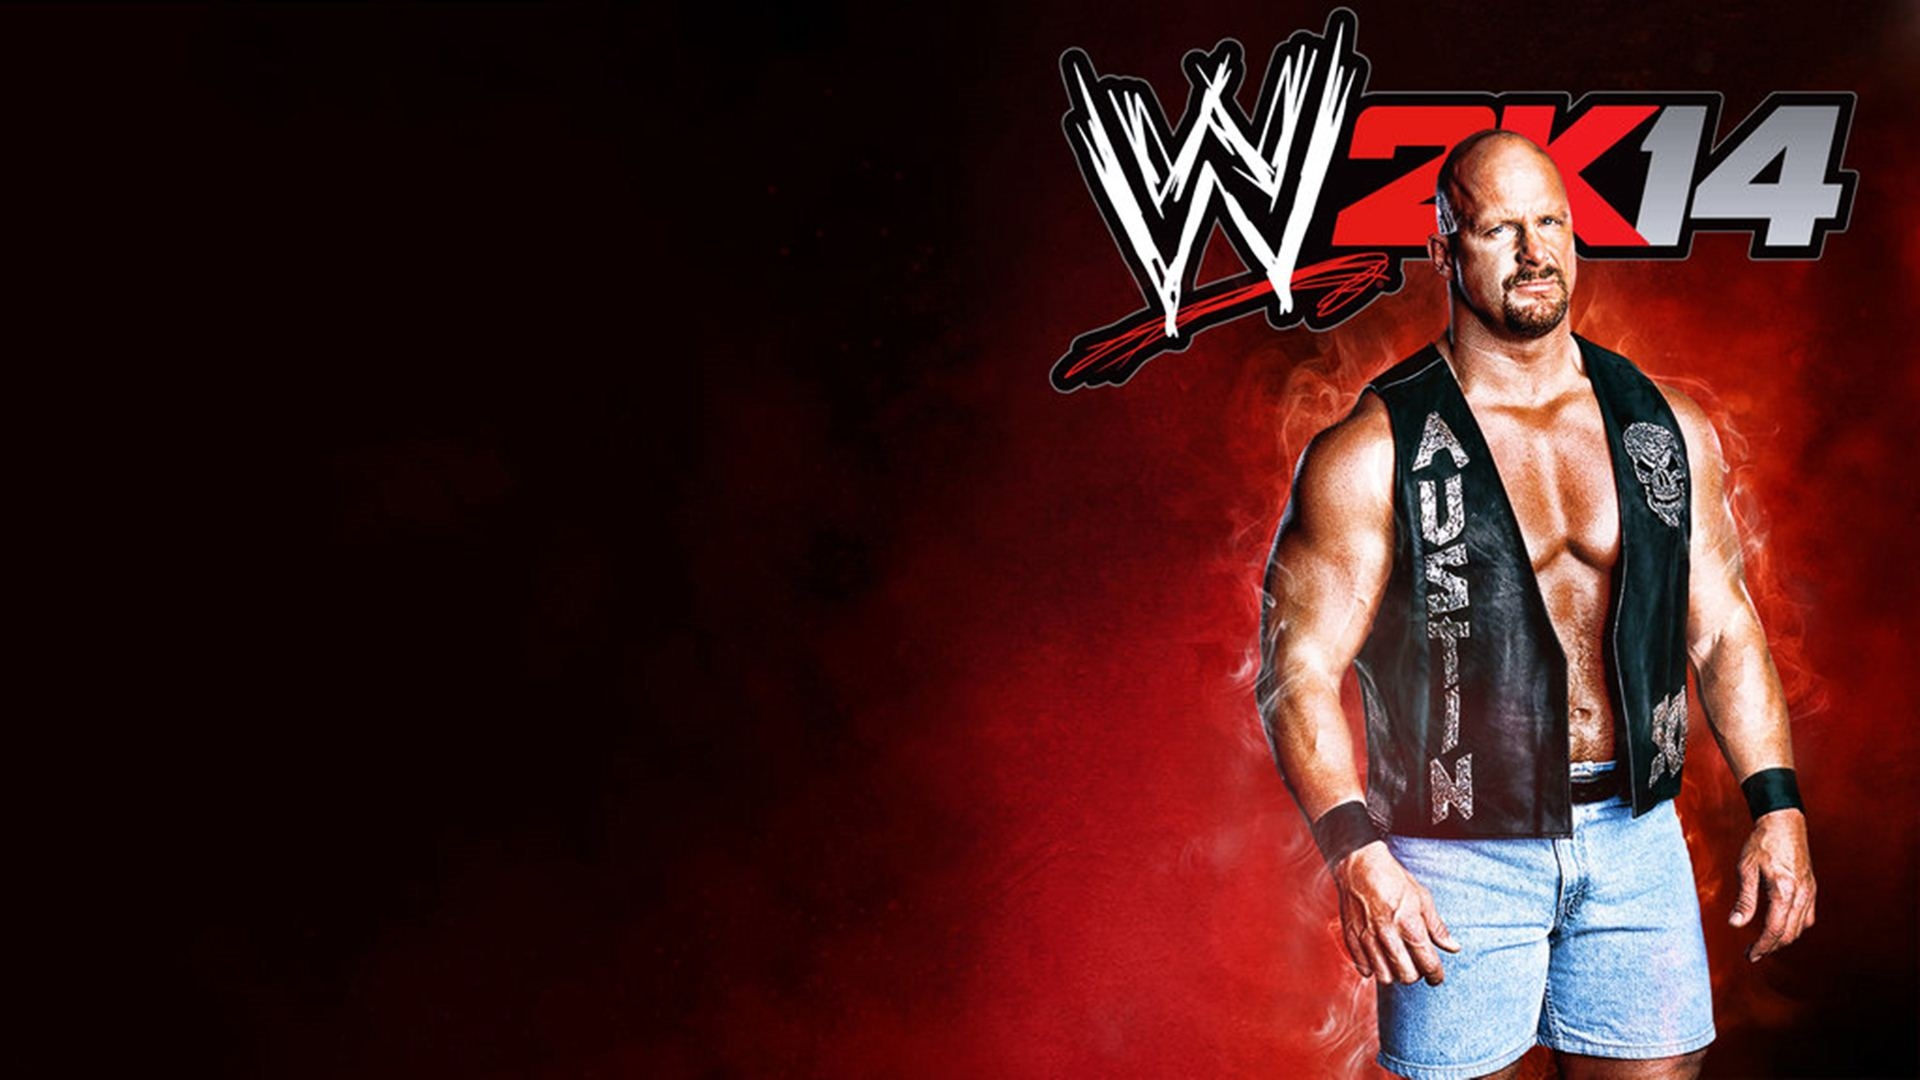 Stone Cold Wallpapers